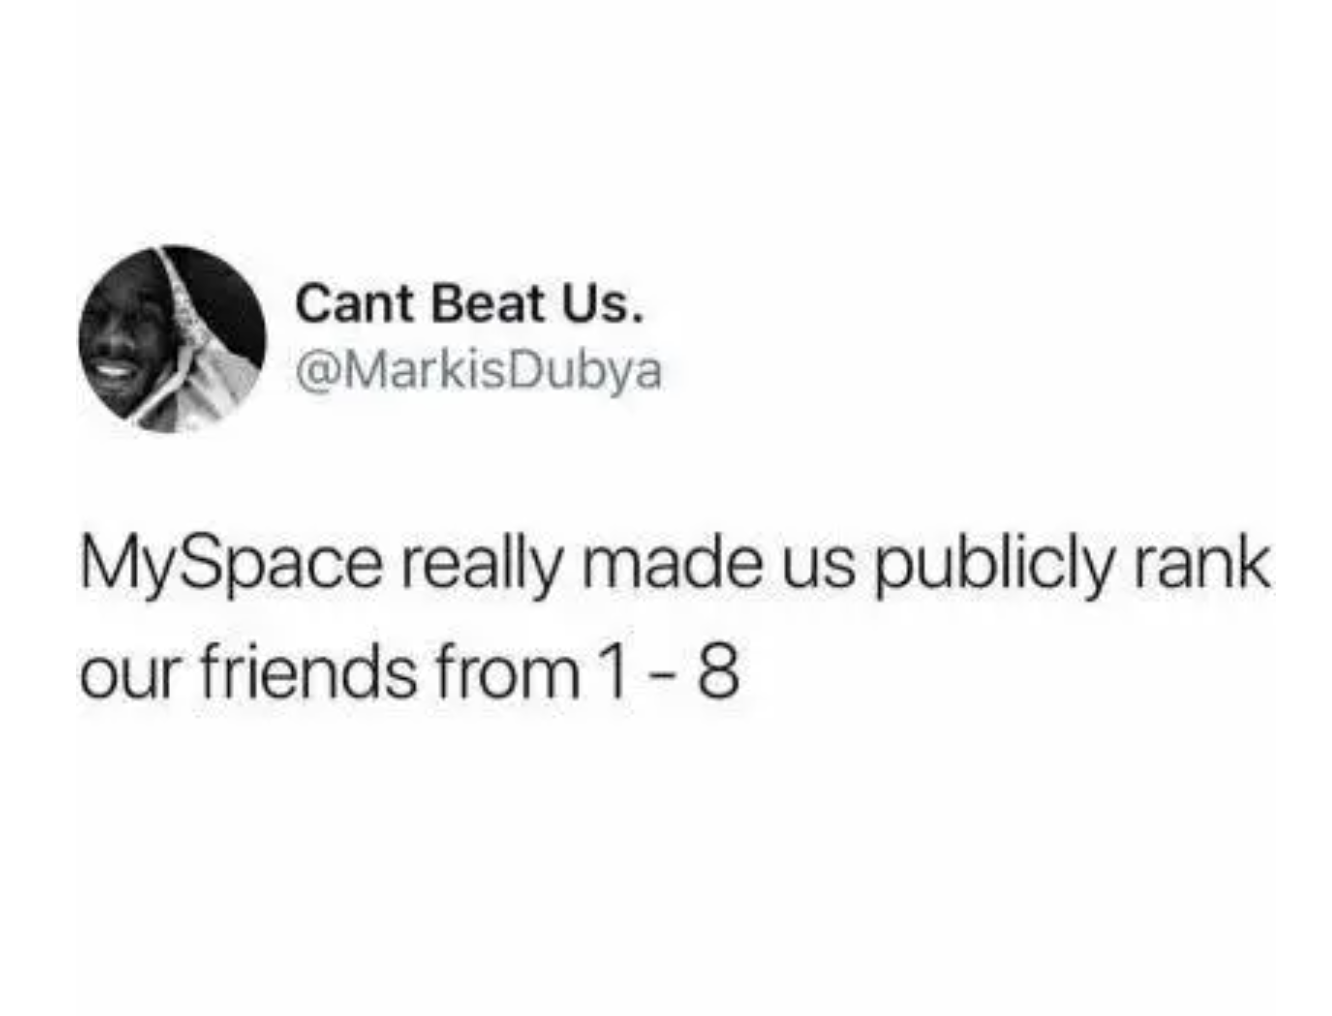 tweet reading myspace really made us rank our friends 1-8